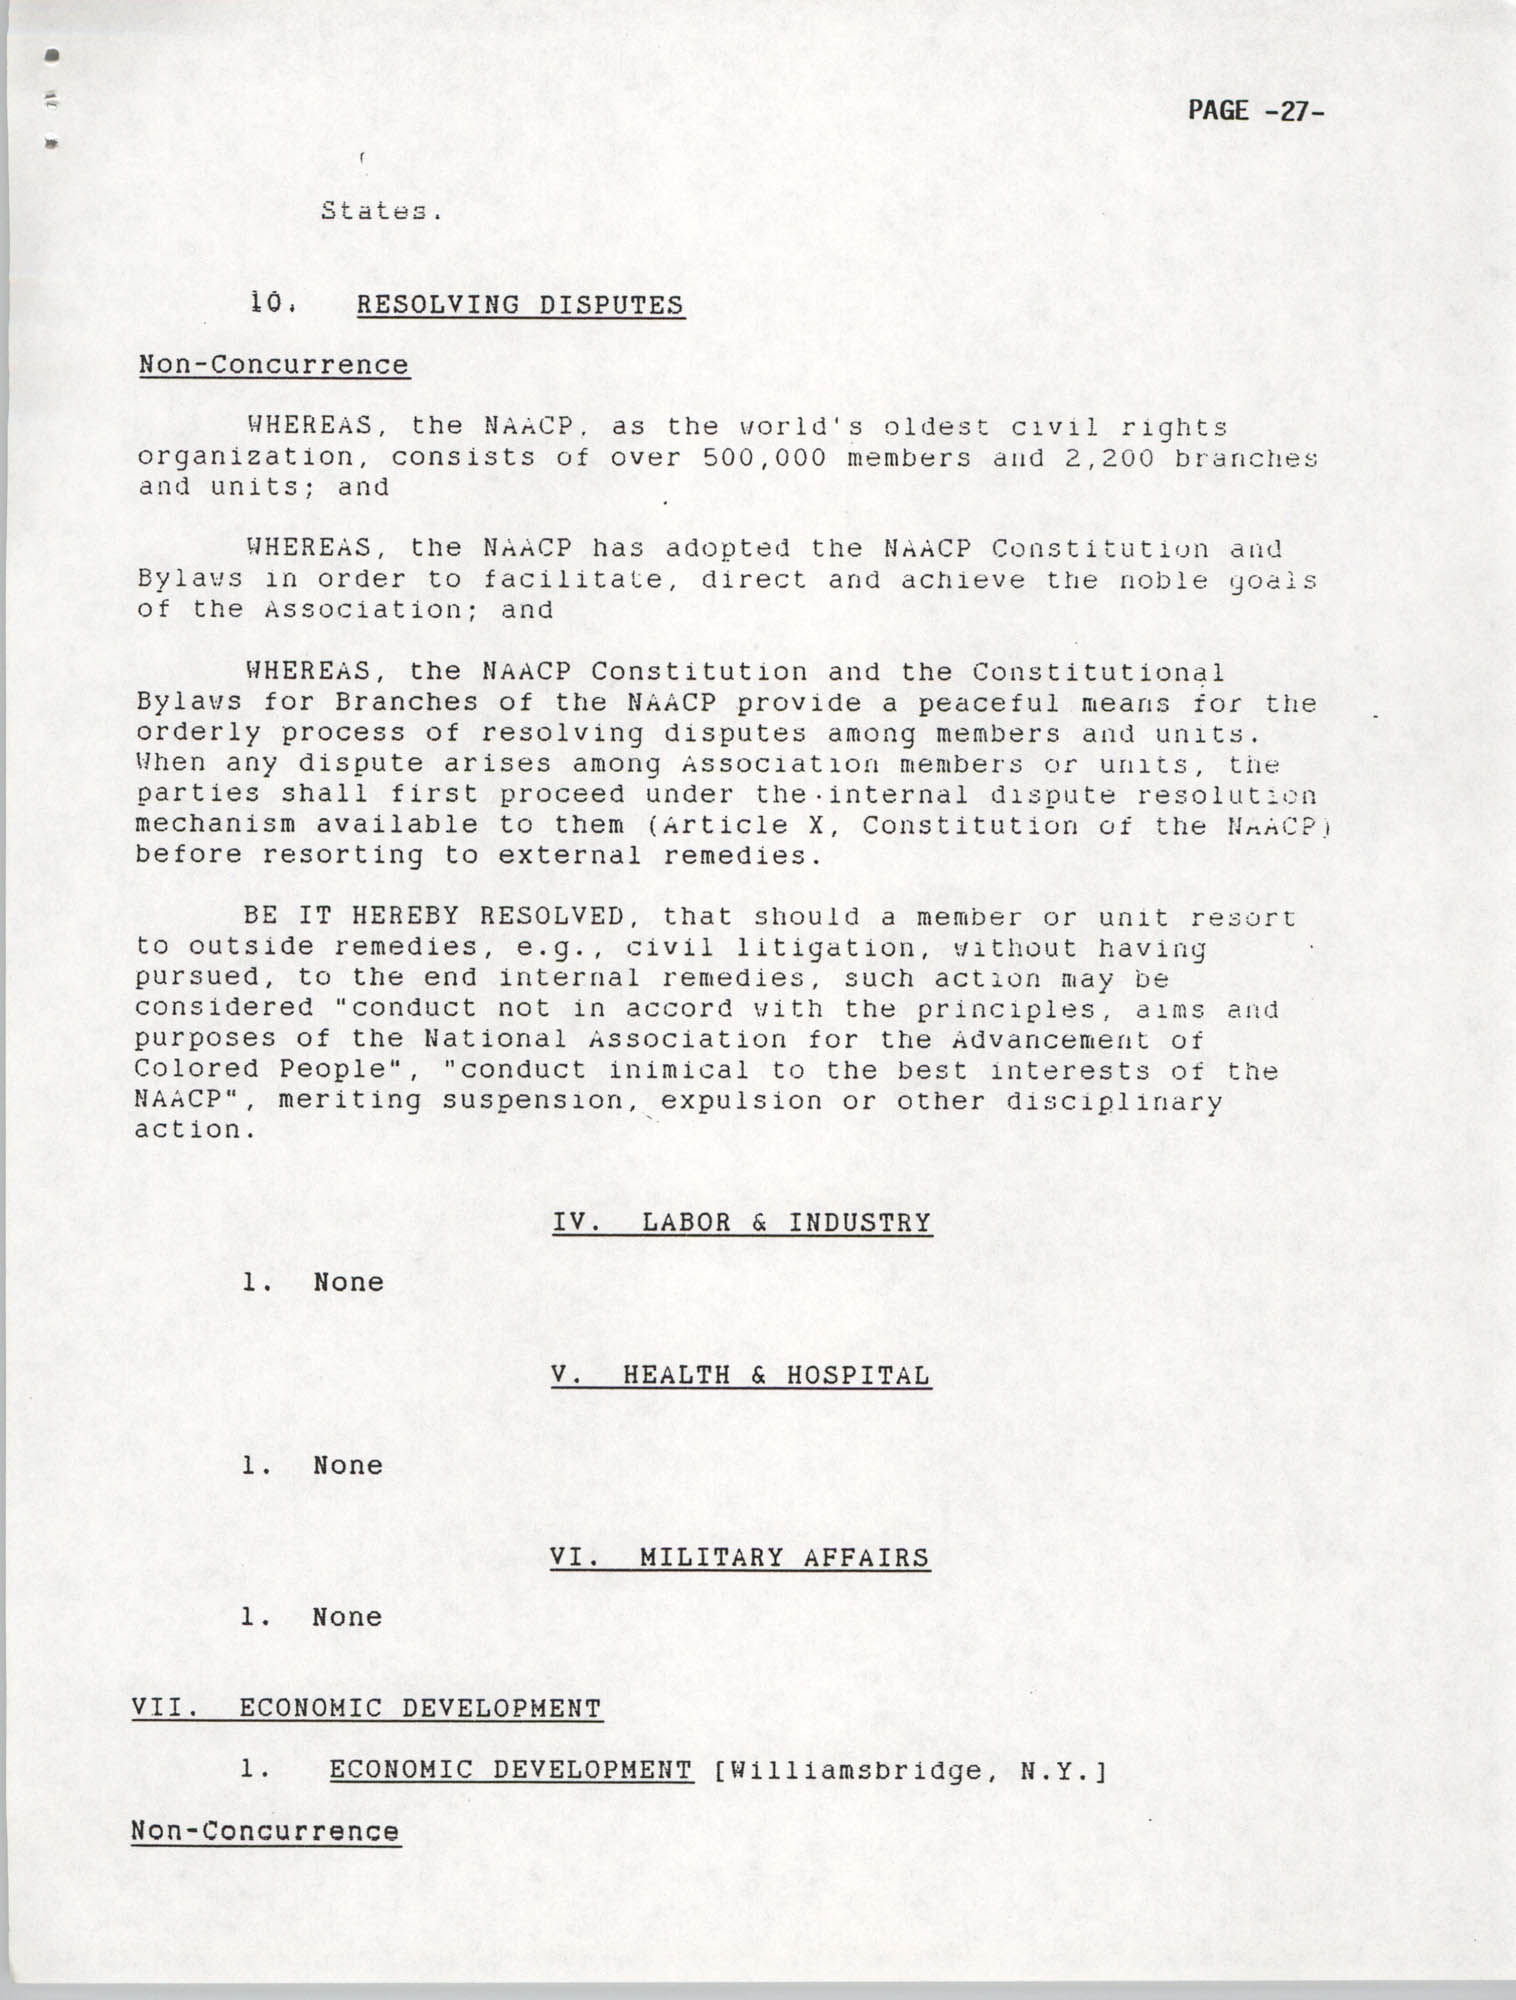 Resolutions Submitted Under Article X, Section 2 of the Constitution of the NAACP, 1992, Page 27